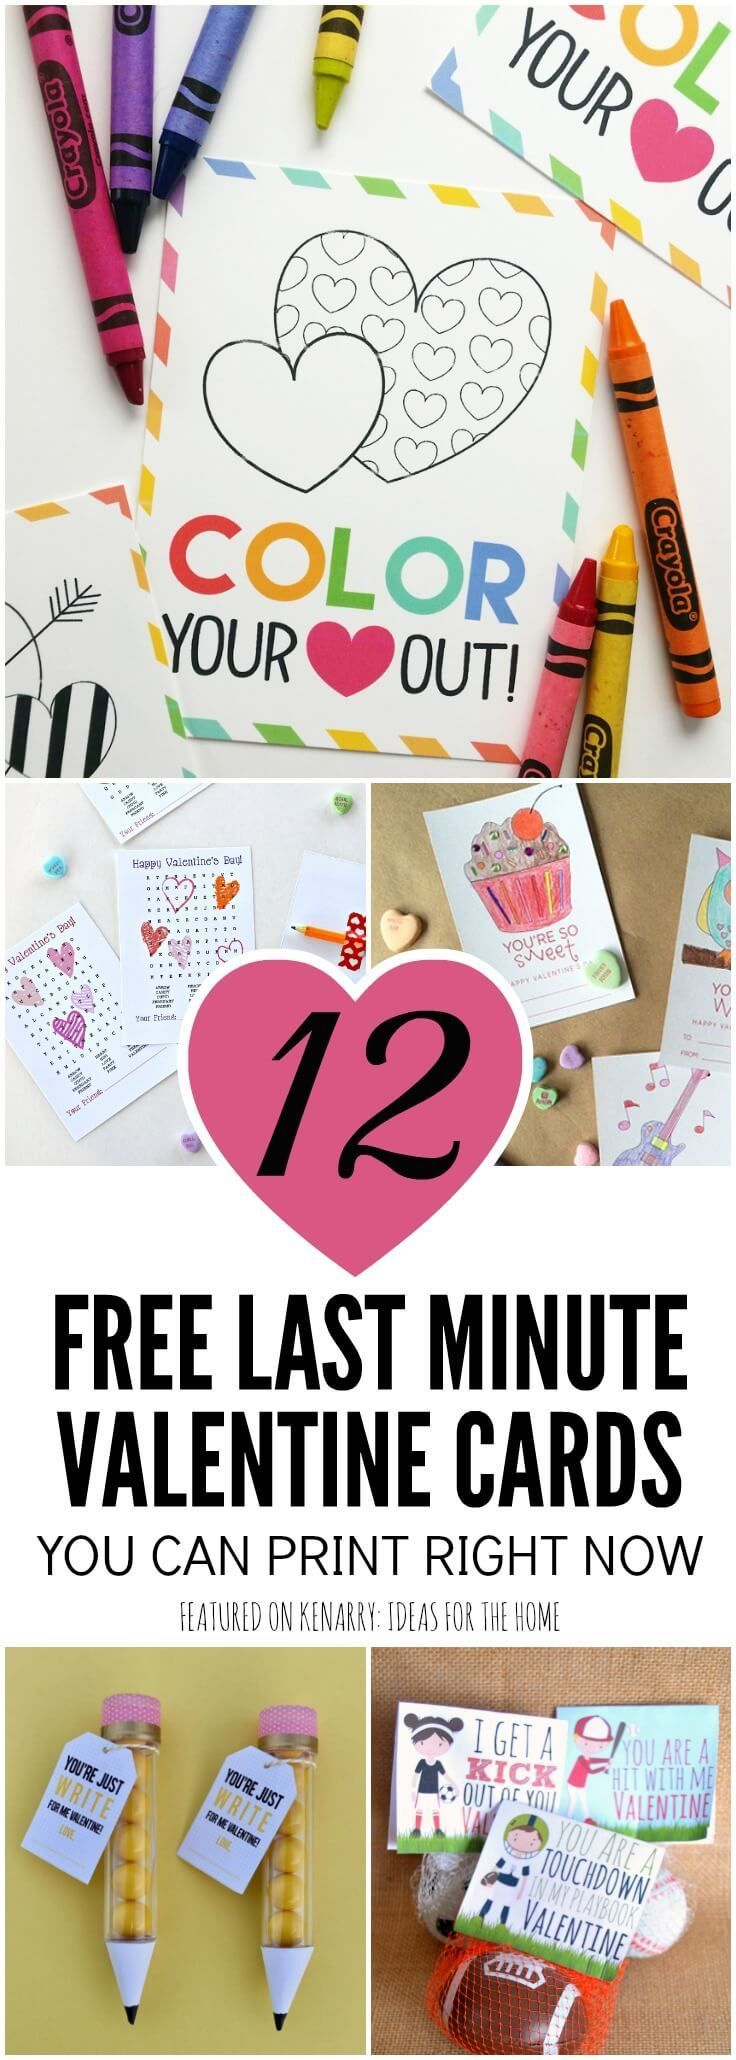 Free Printable Valentines 12 Last Minute Cards You Can Print Now